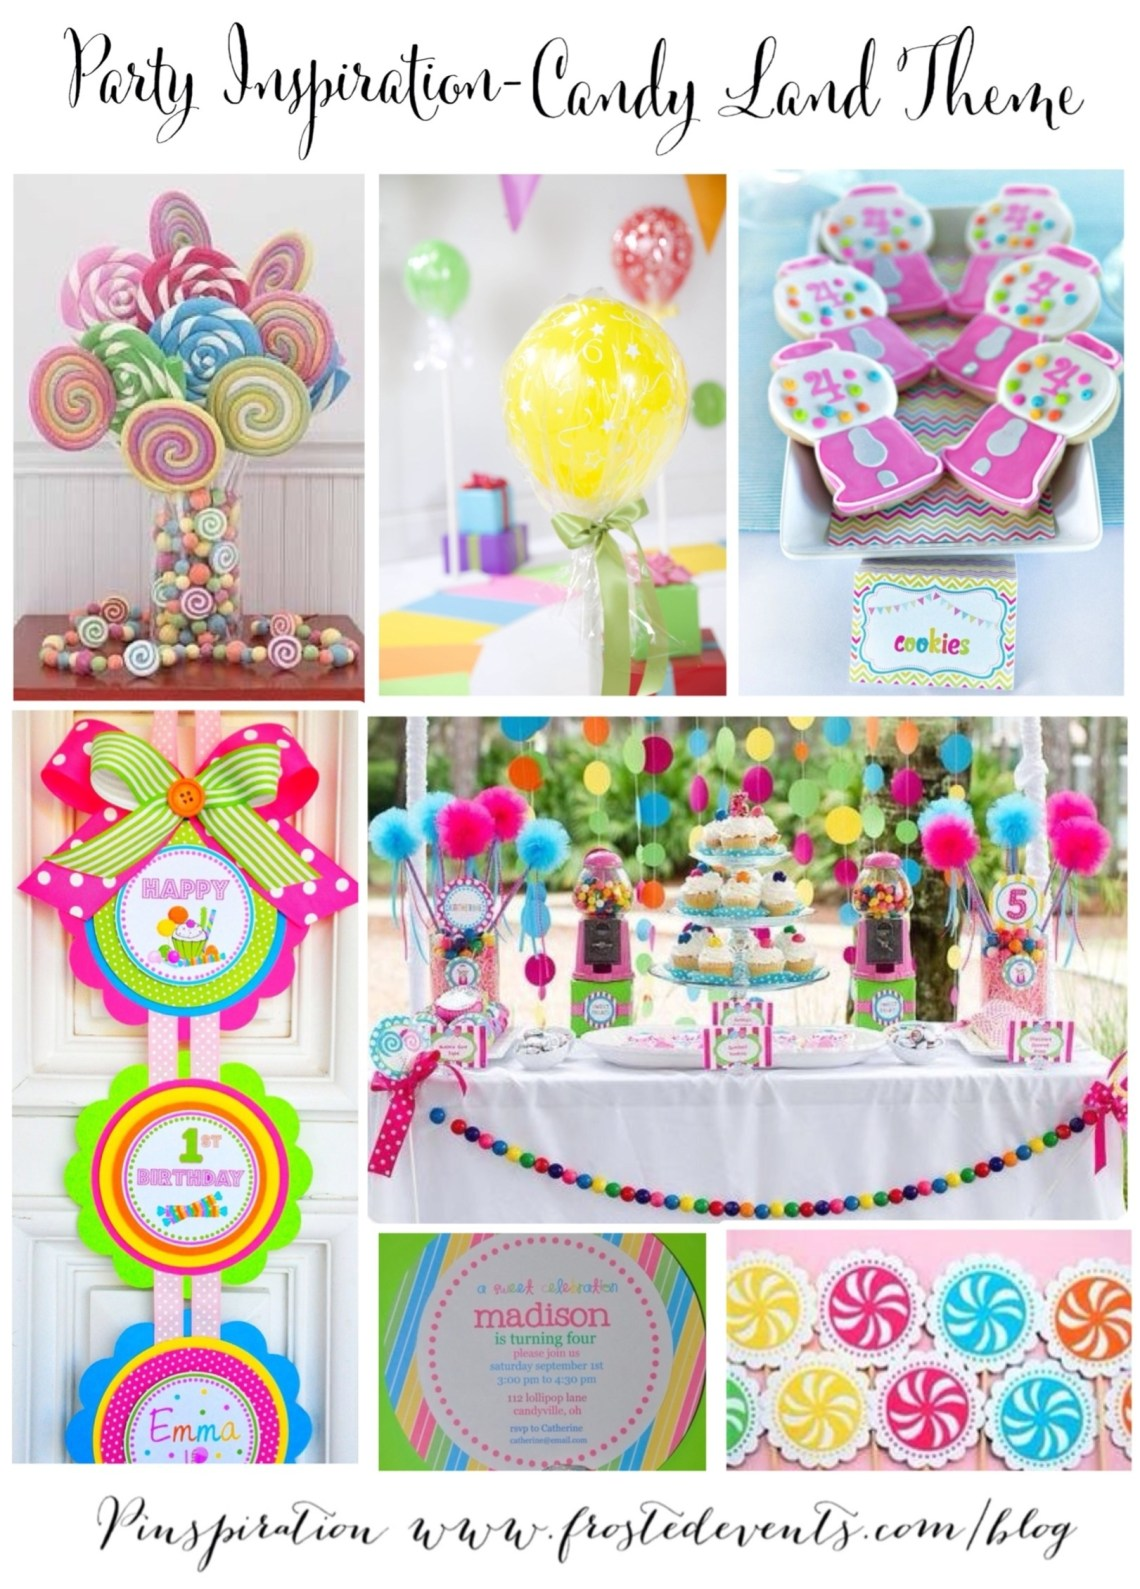 Candy Land Theme Party Ideas and Inspiration www.frostedevents.com Kids Party Ideas